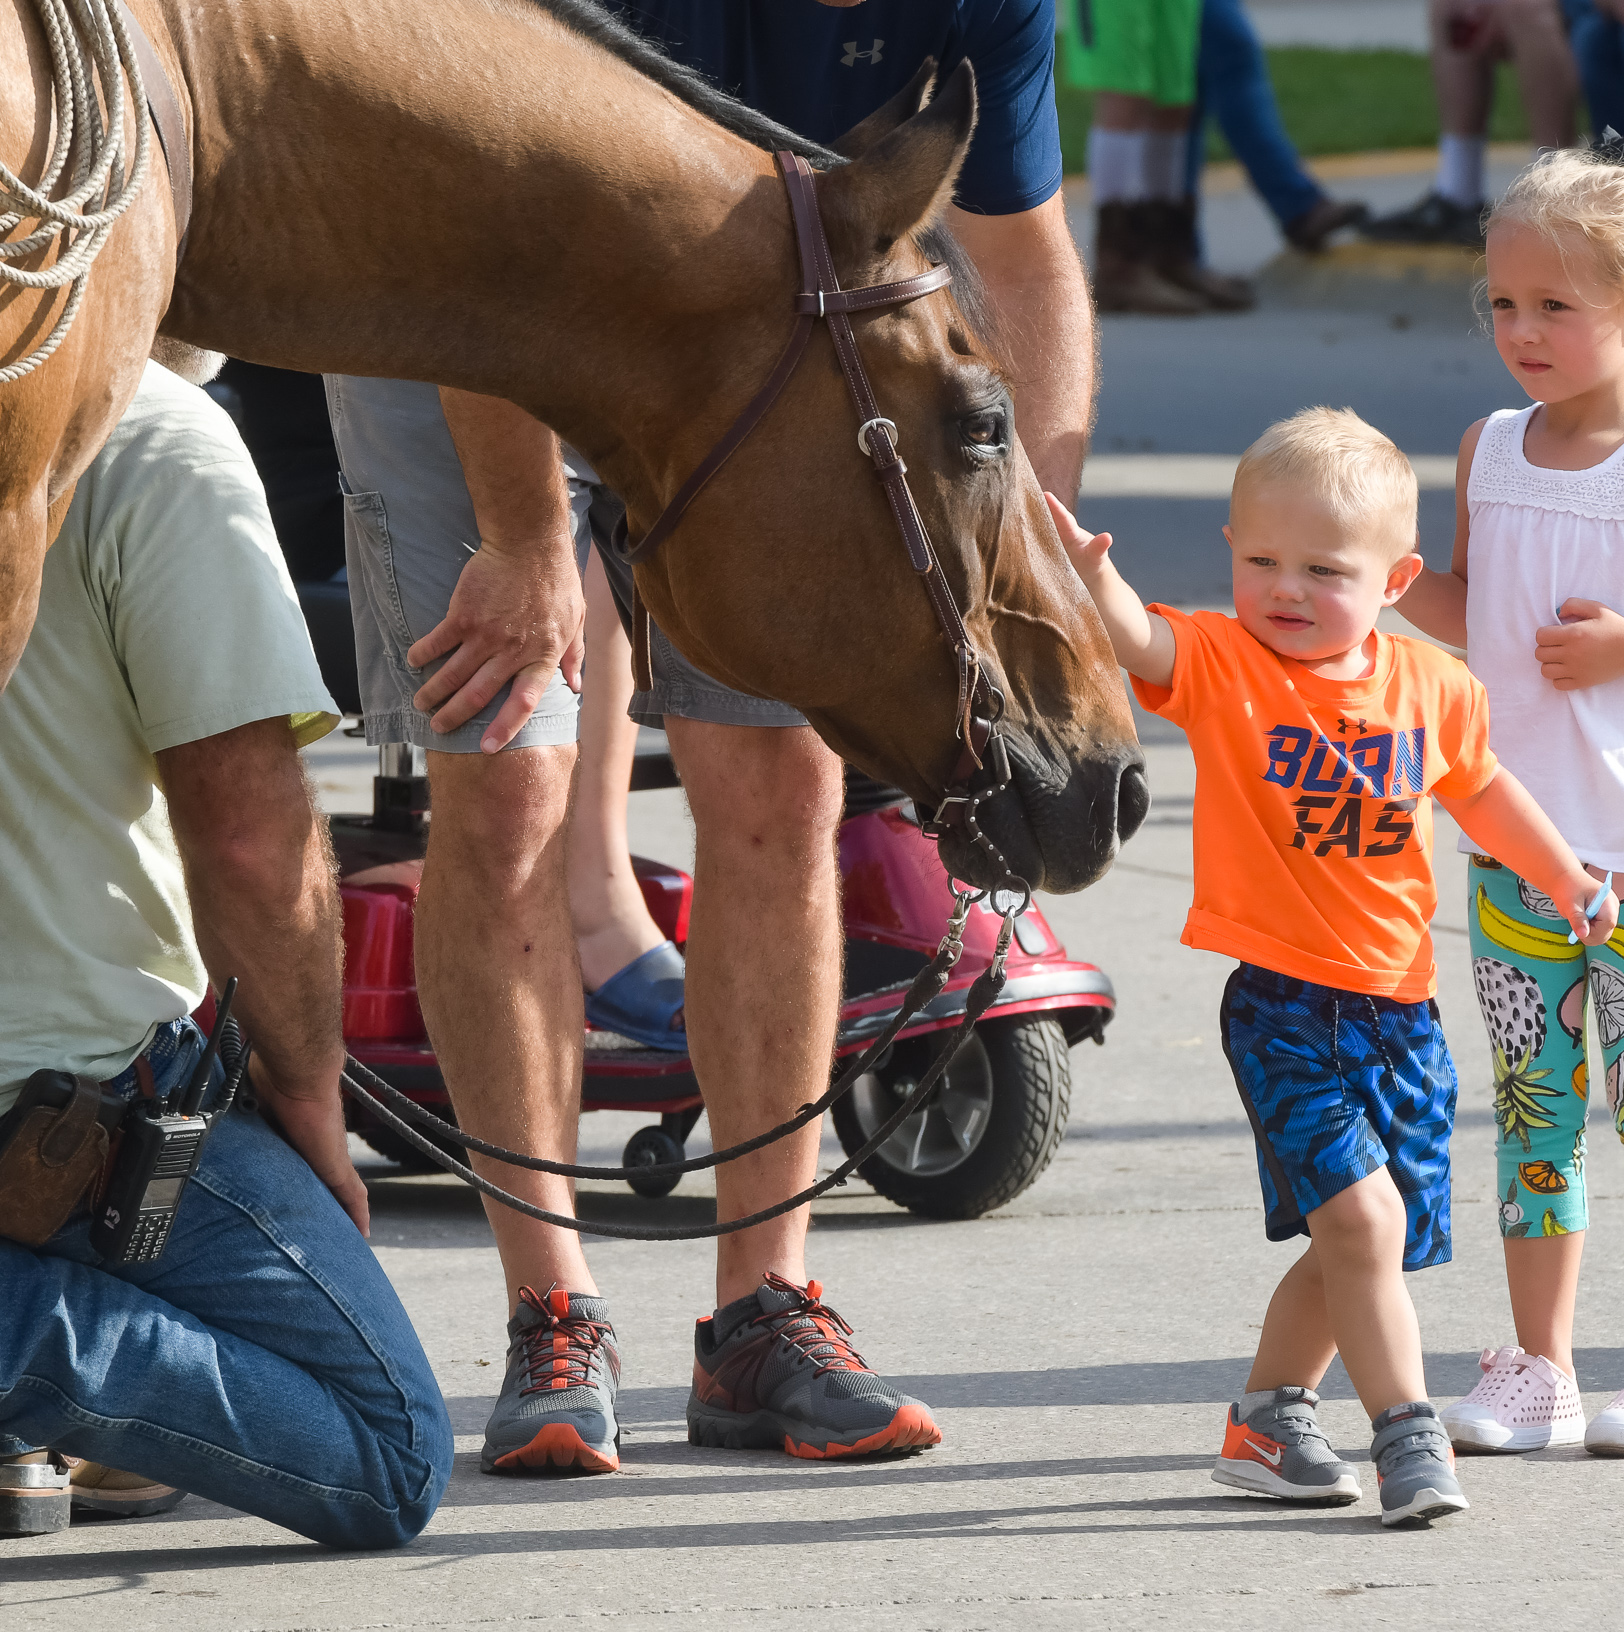 Caden Matthias of Fairbanks pets the nose of Mike Wimer's horse at the Iowa State Fair. Photo credit: Joseph L. Murphy/Iowa Soybean Association